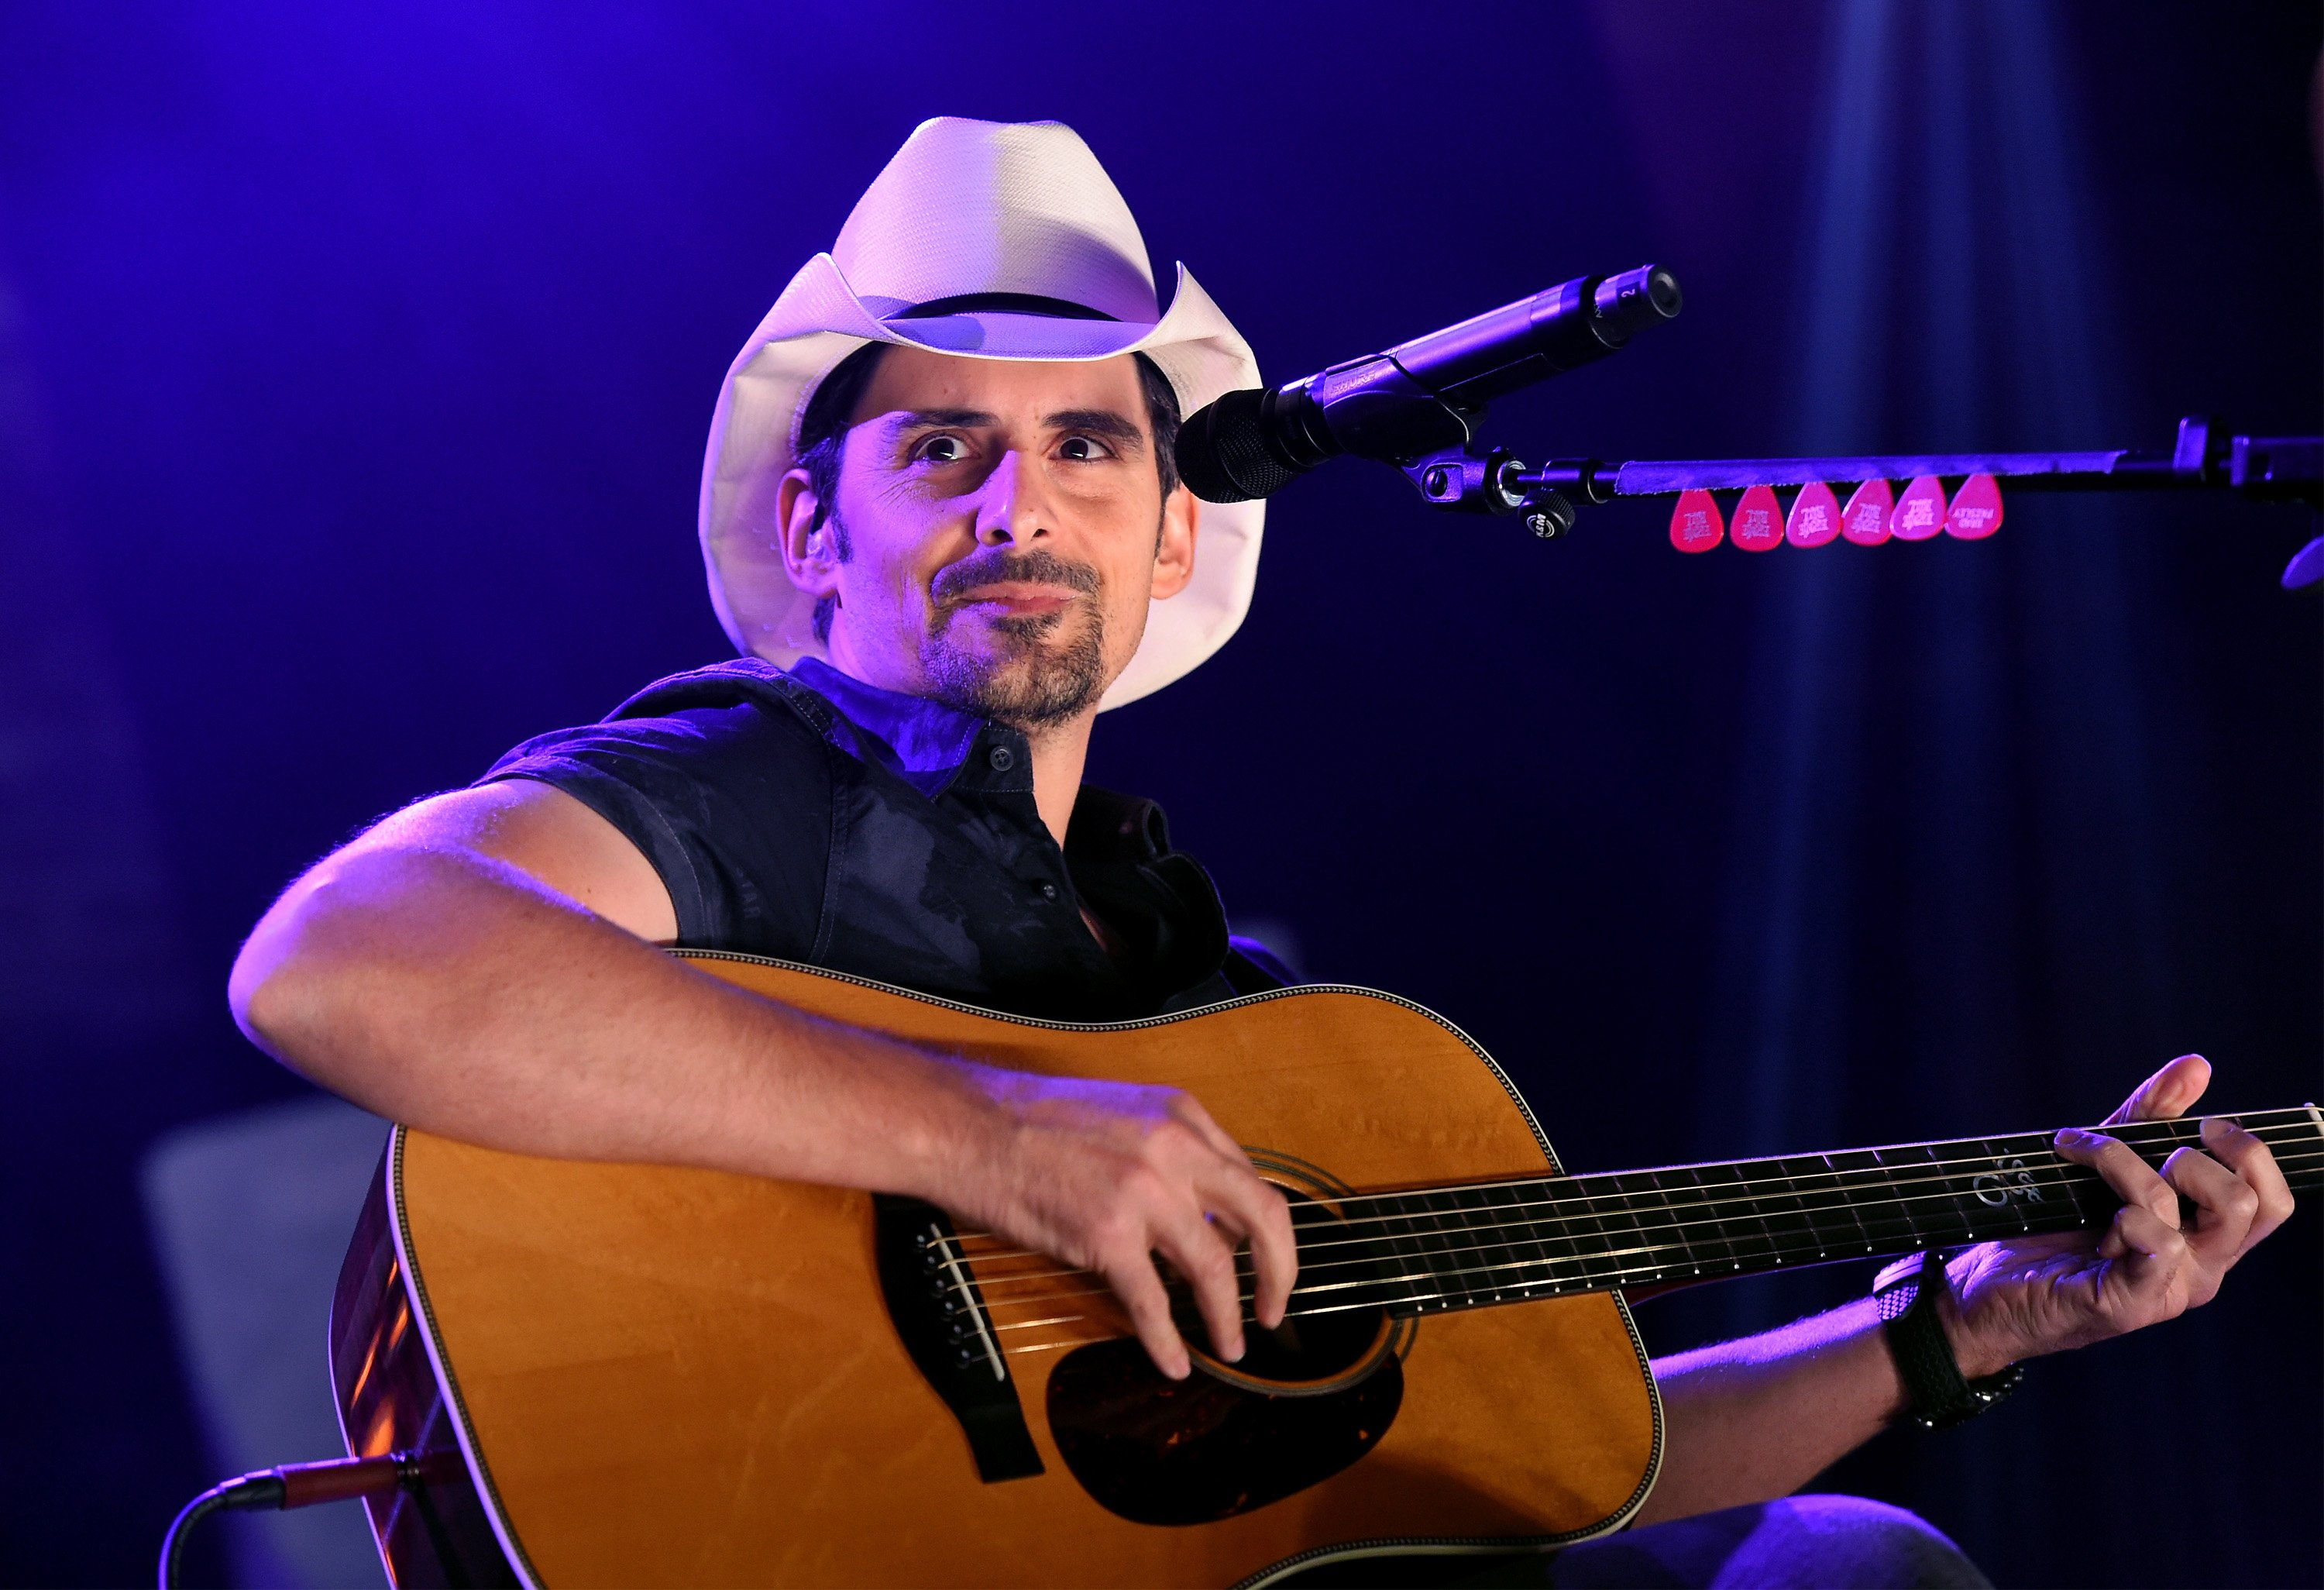 Brad Paisley performs at iHeartRadio Theater on November 11, 2016, in Burbank, California. | Source: Getty Images.